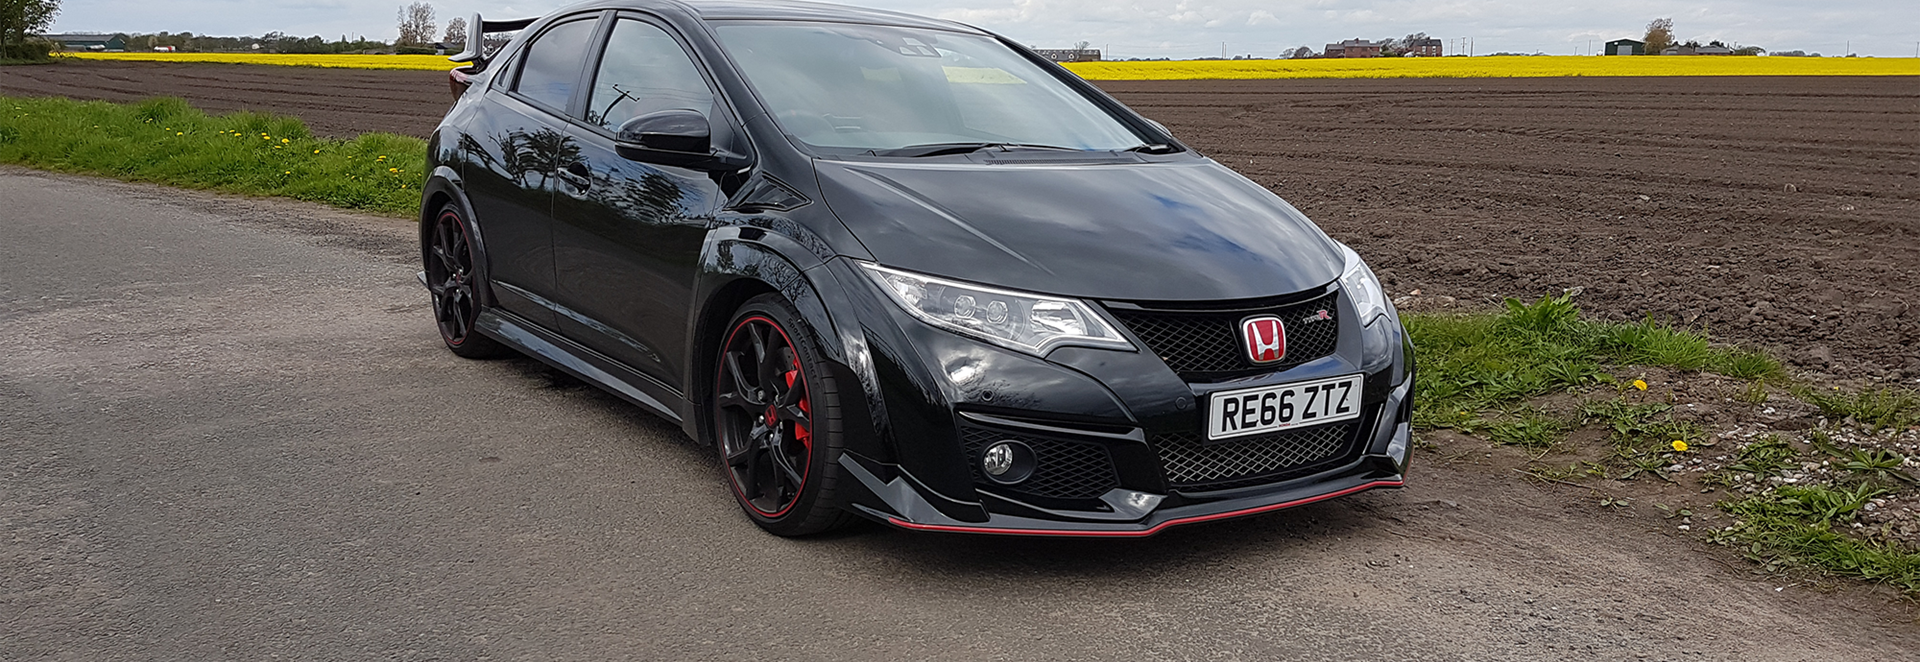 honda civic type r long term update who cares about the fk2 car keys. Black Bedroom Furniture Sets. Home Design Ideas